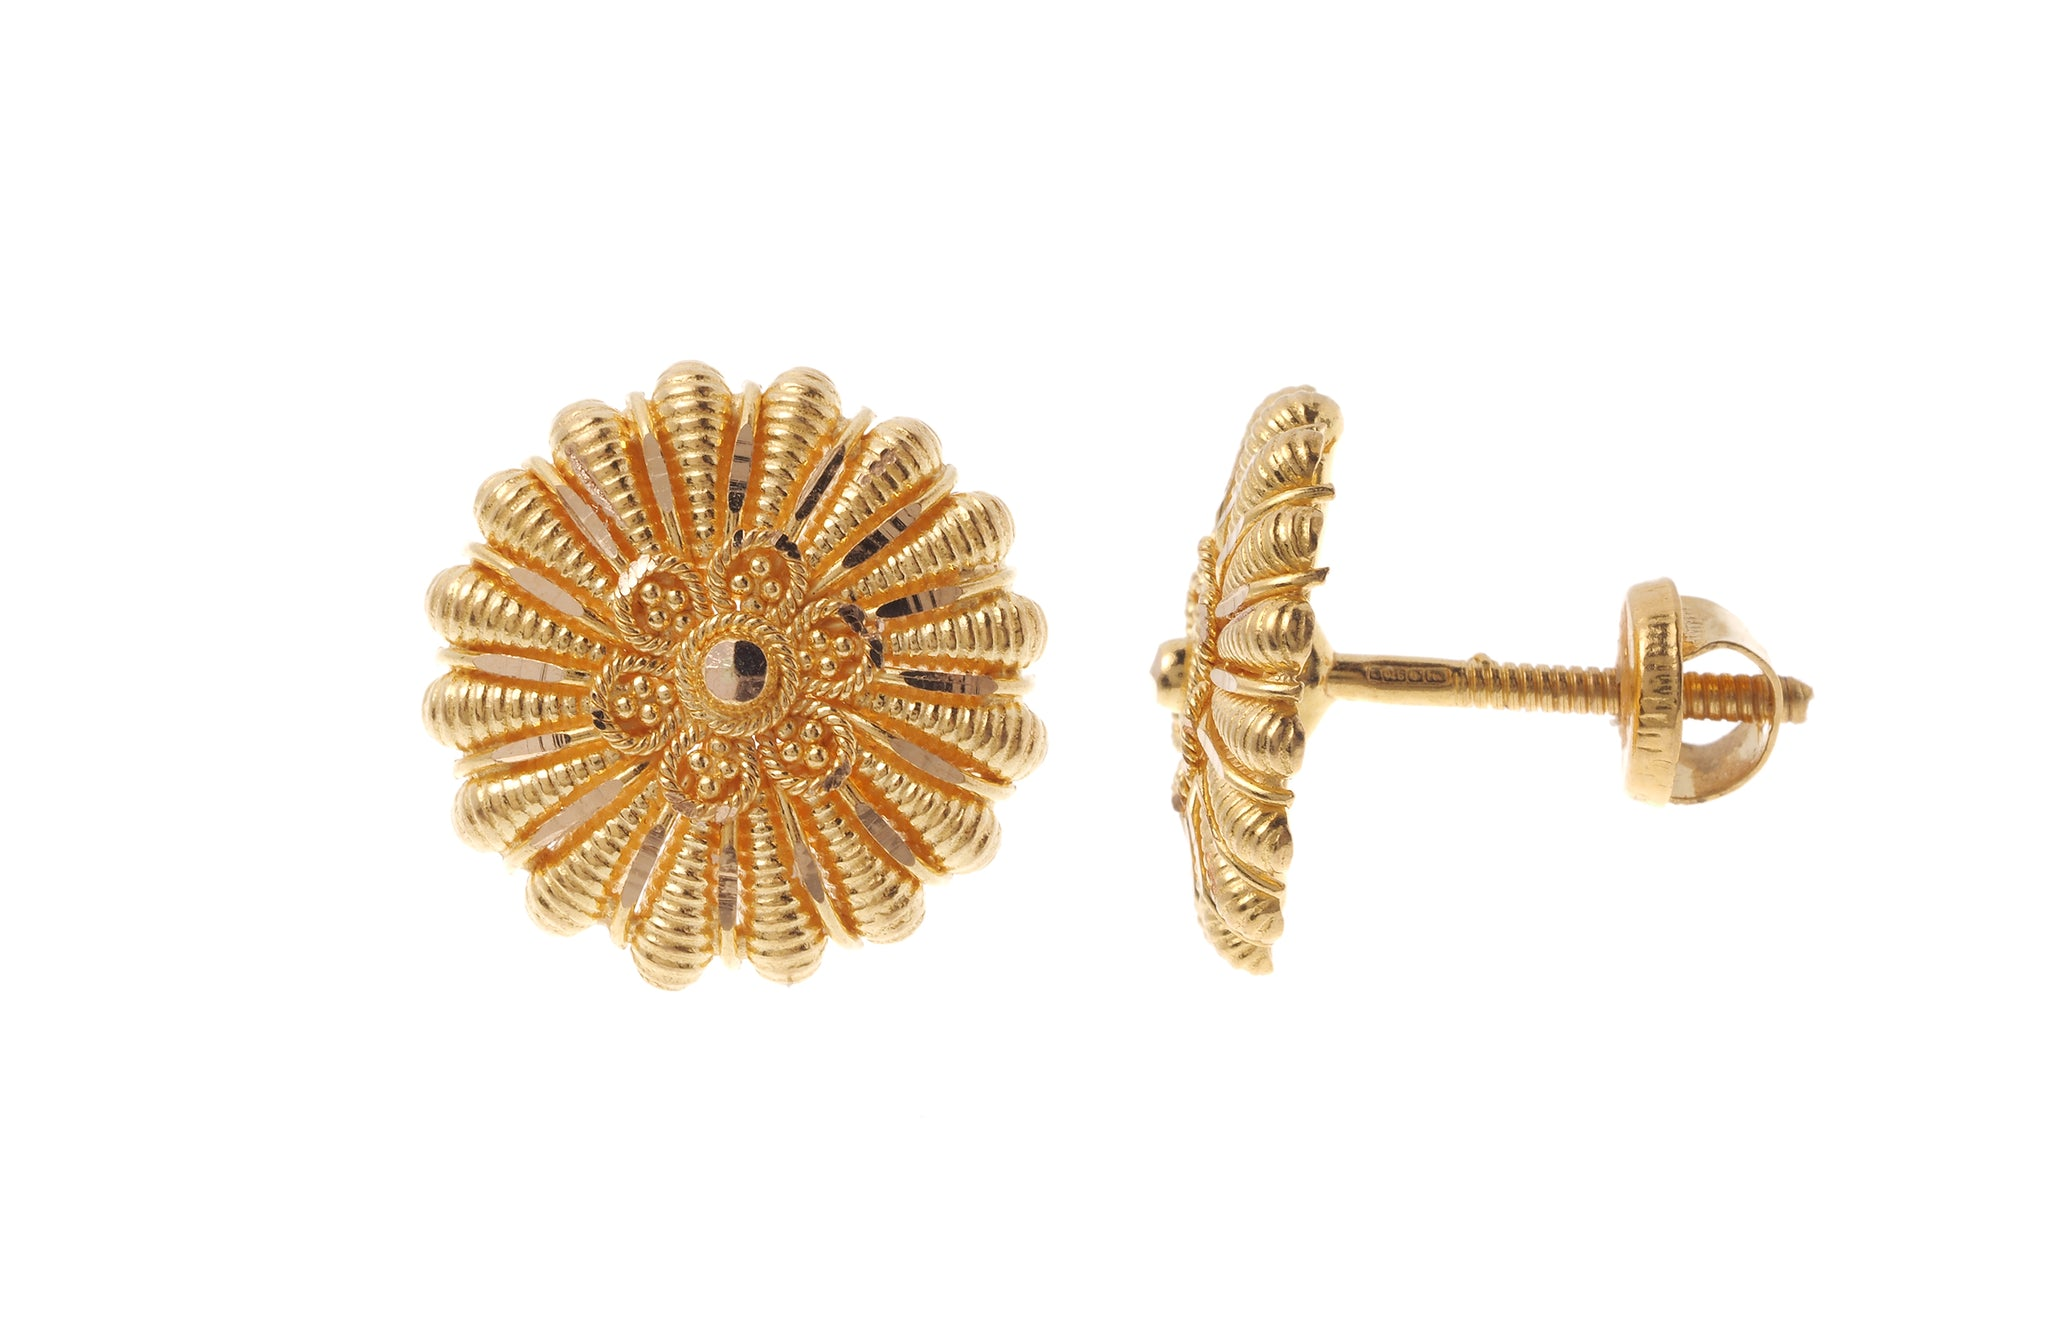 22ct Gold Earrings - Minar Jewellers